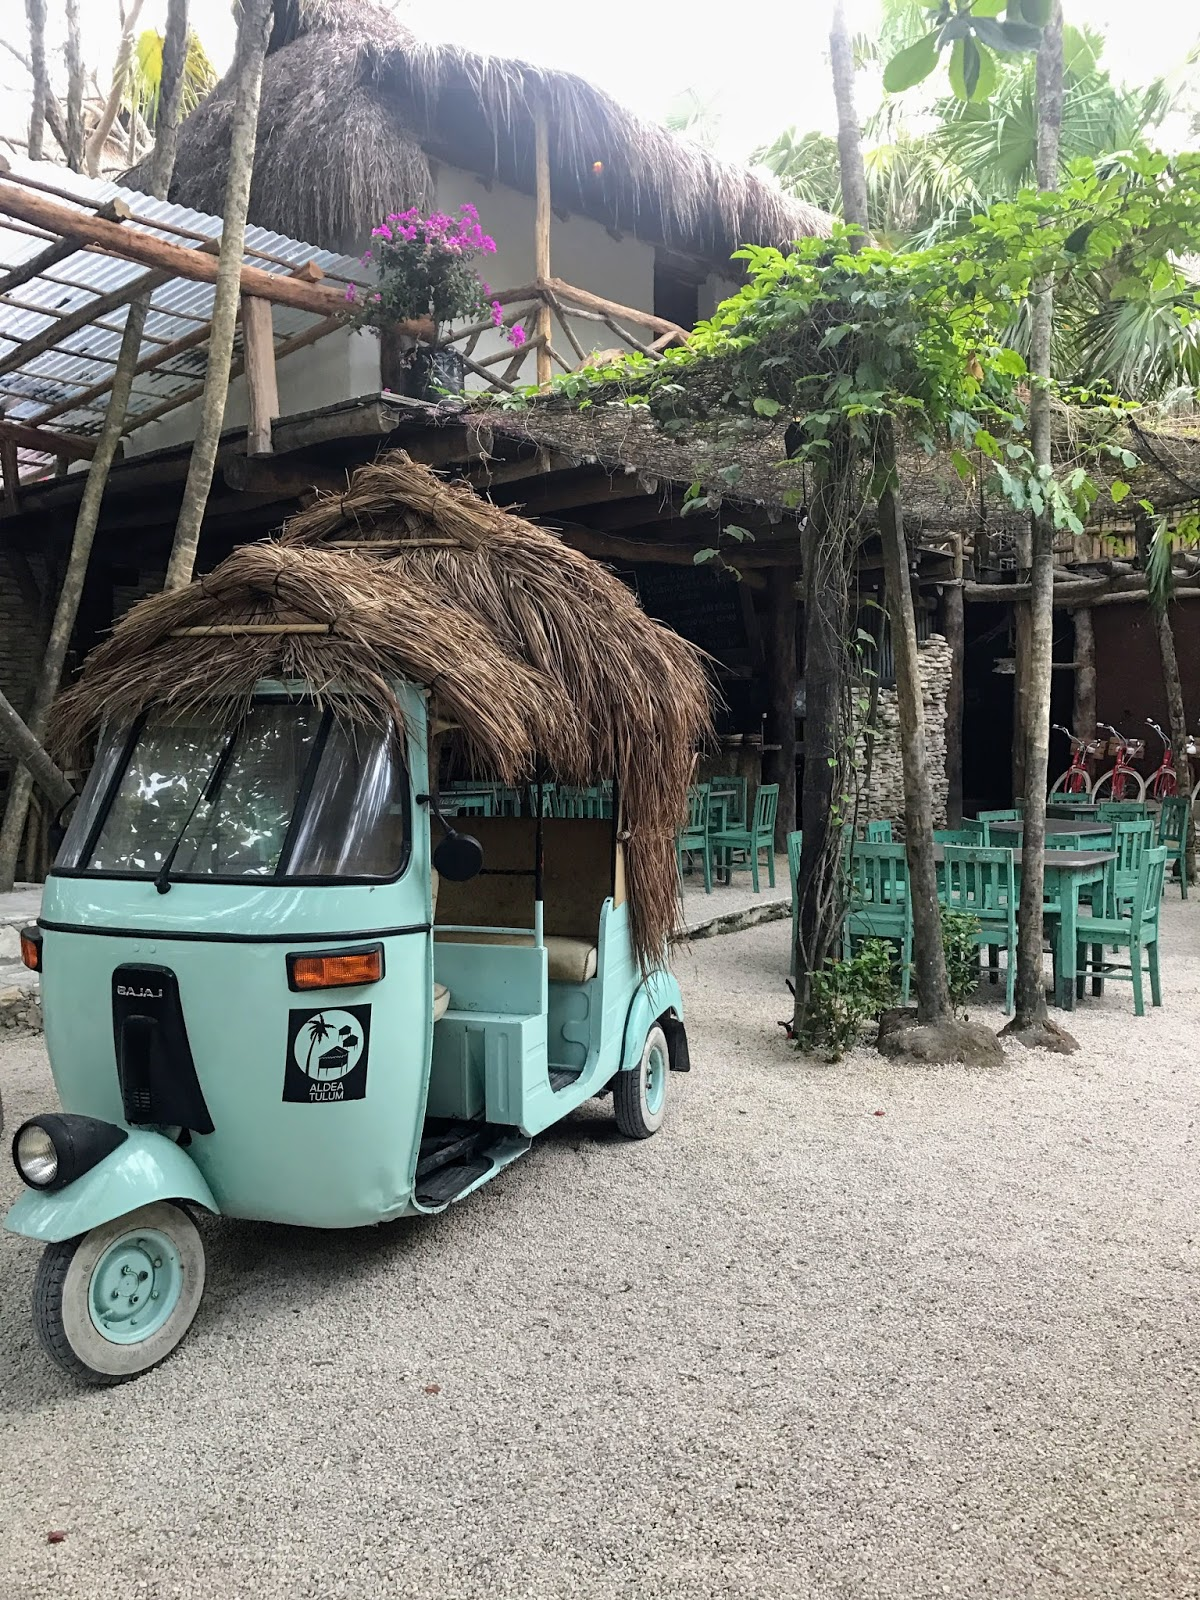 tulum travel guide, where to eat in tulum, tulum best bars, coco tulum, be tulum hotel, hartwood